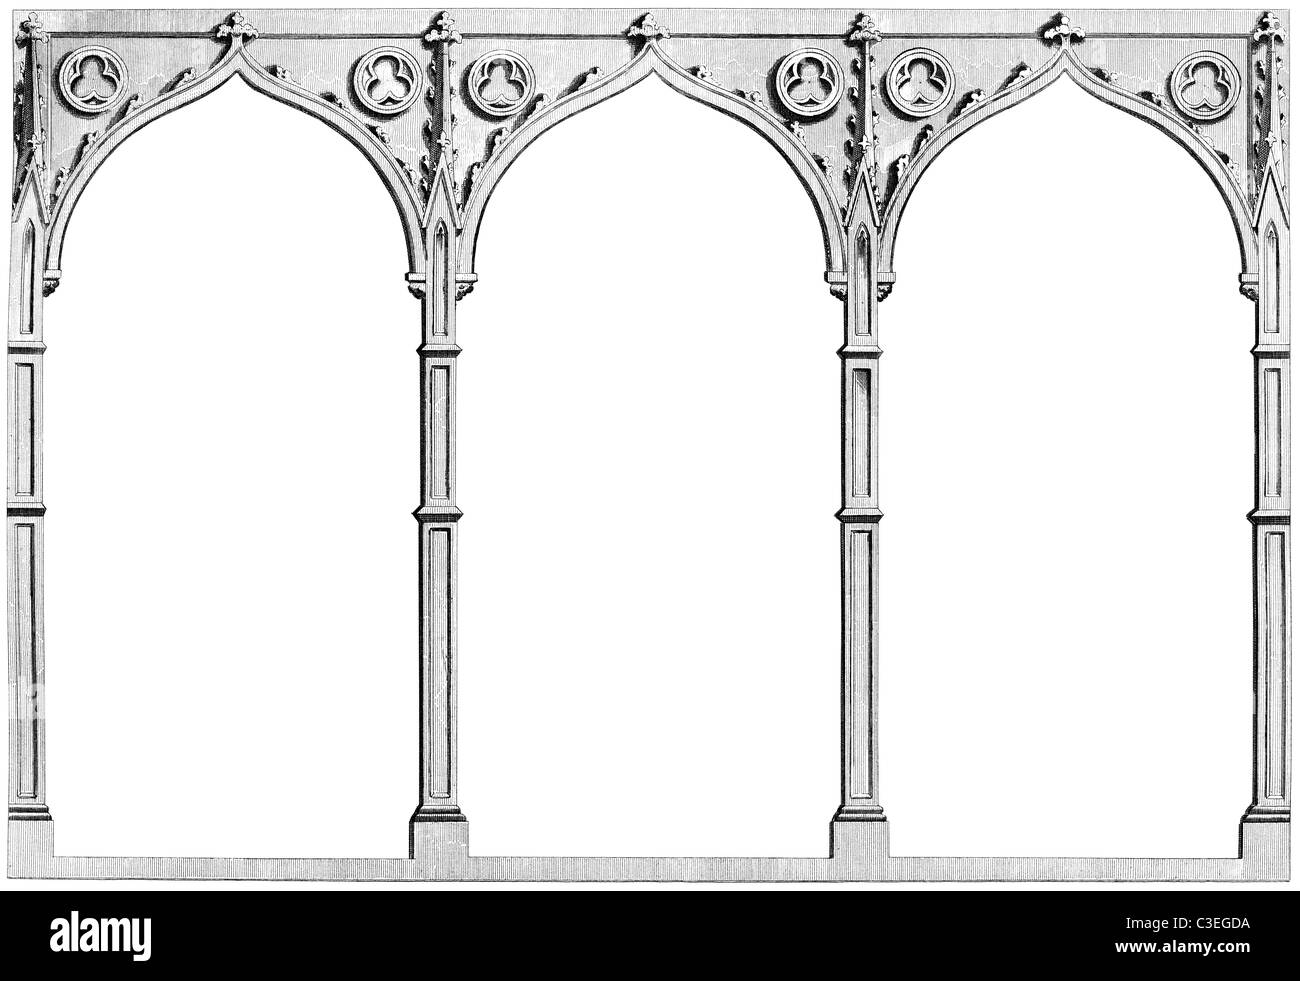 Vintage engraving of three gothic arches Stock Photo